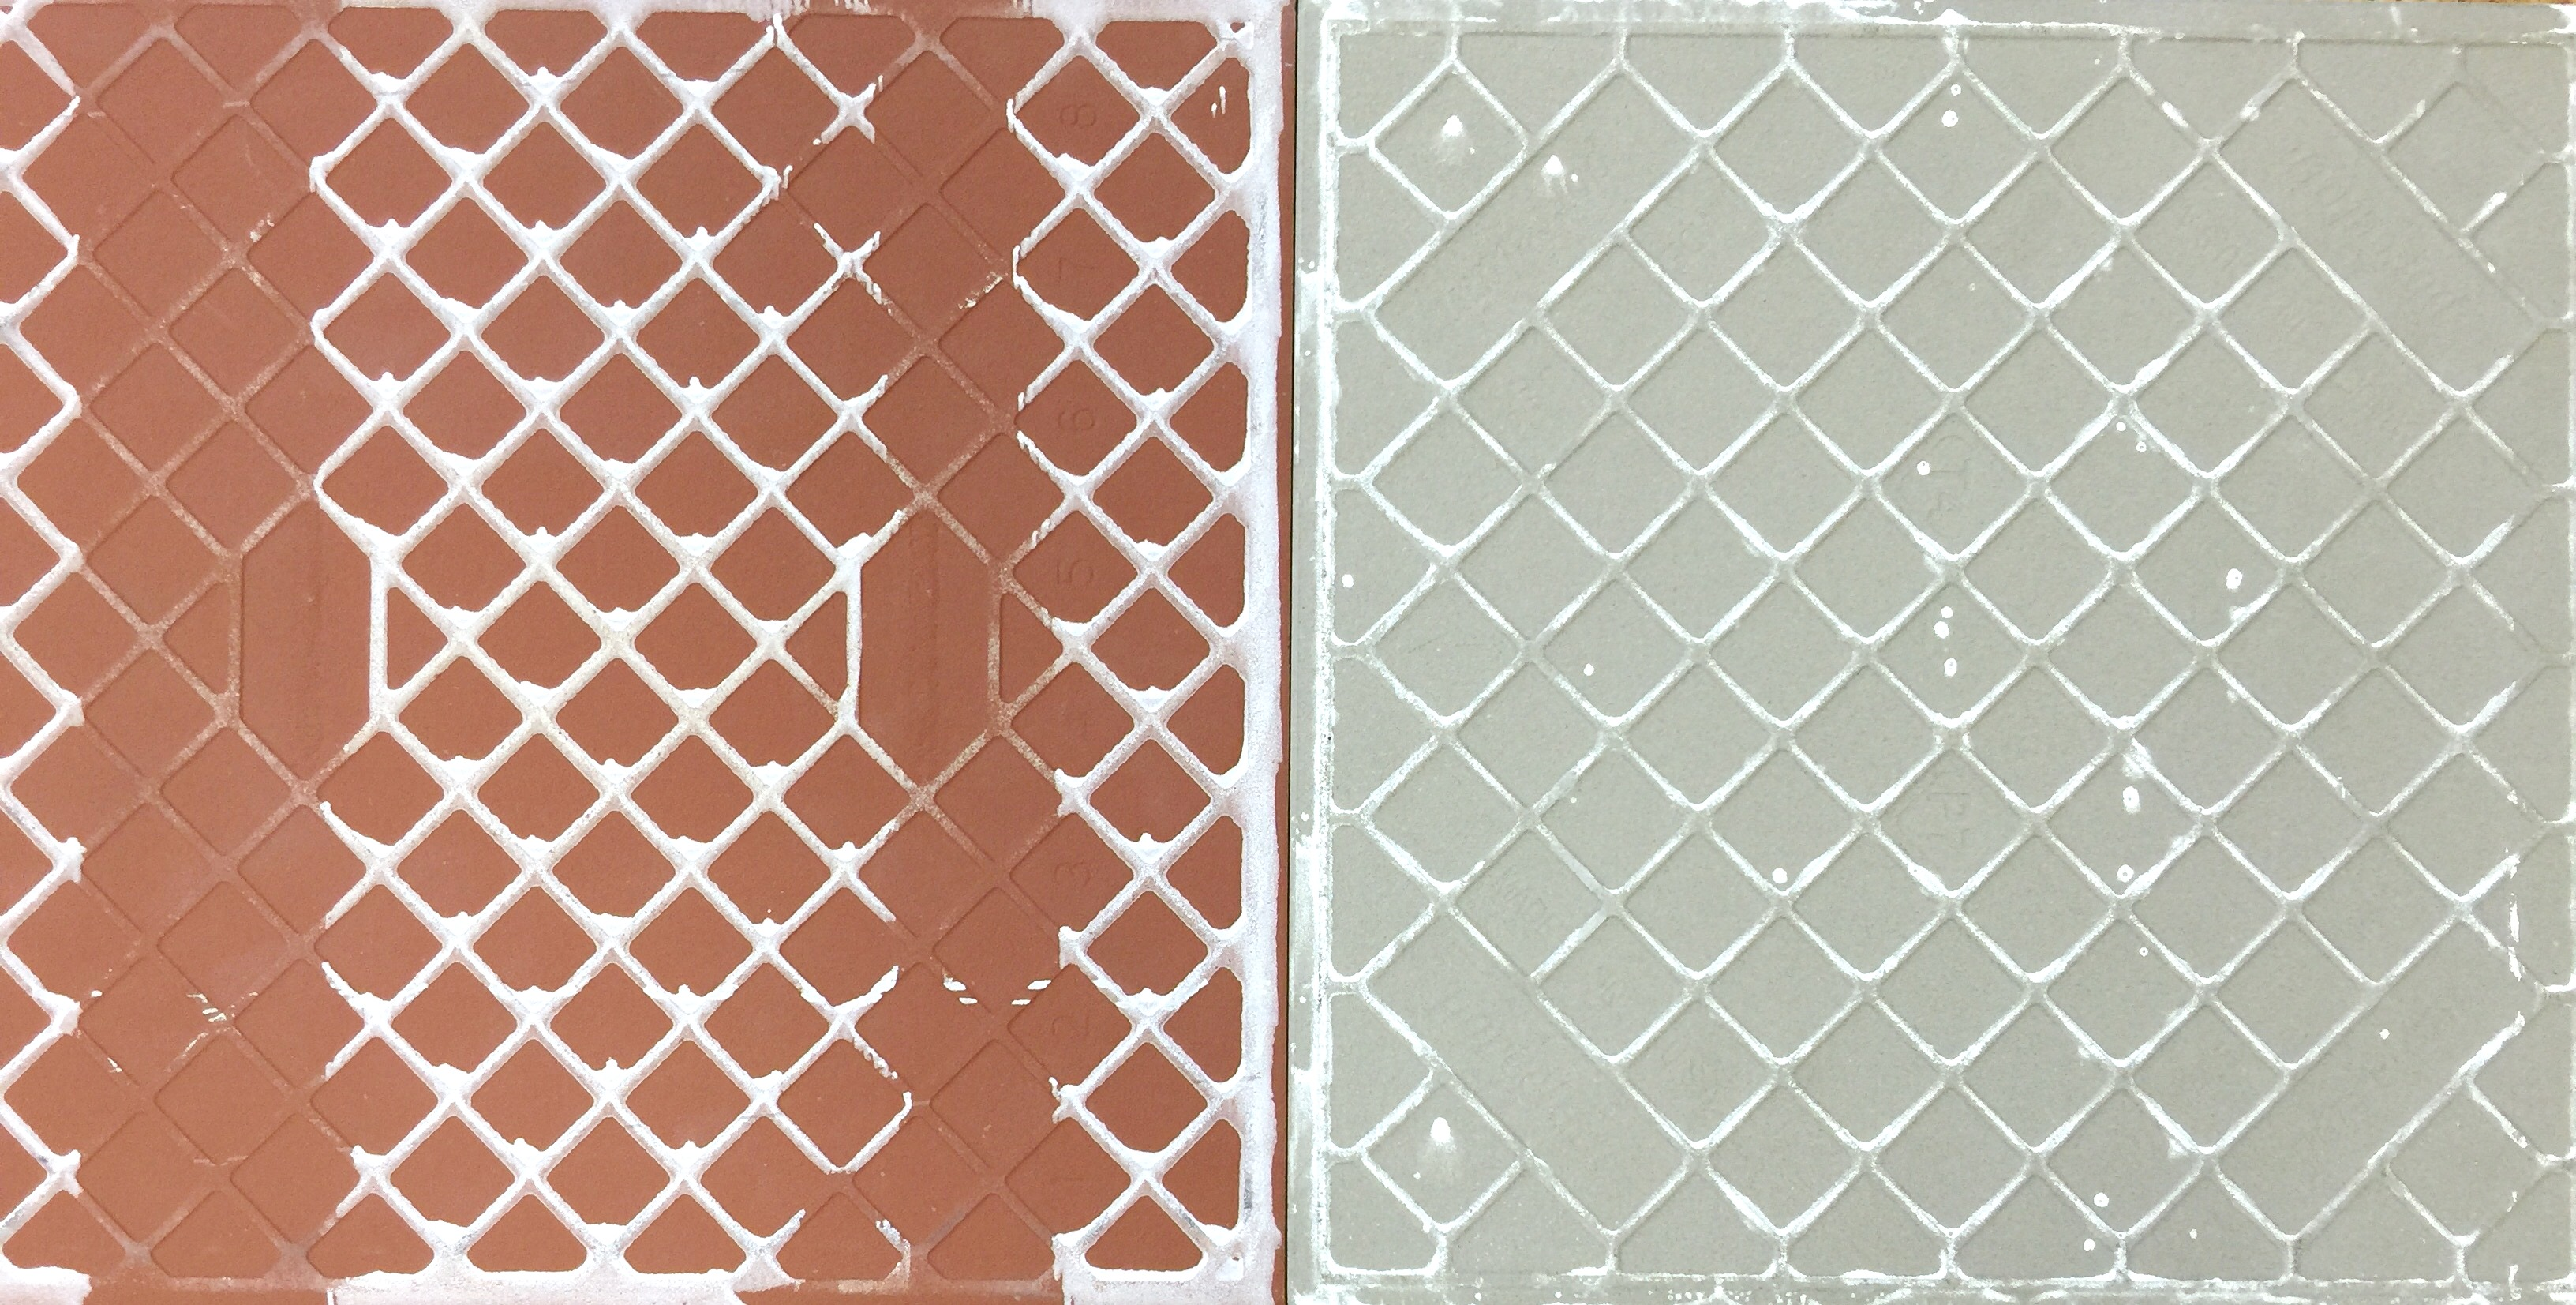 Ceramic vs porcelain regular ceramic tile is often characterized by a red brown or white colored bisque while a porcelain tile is a white or gray color dailygadgetfo Images